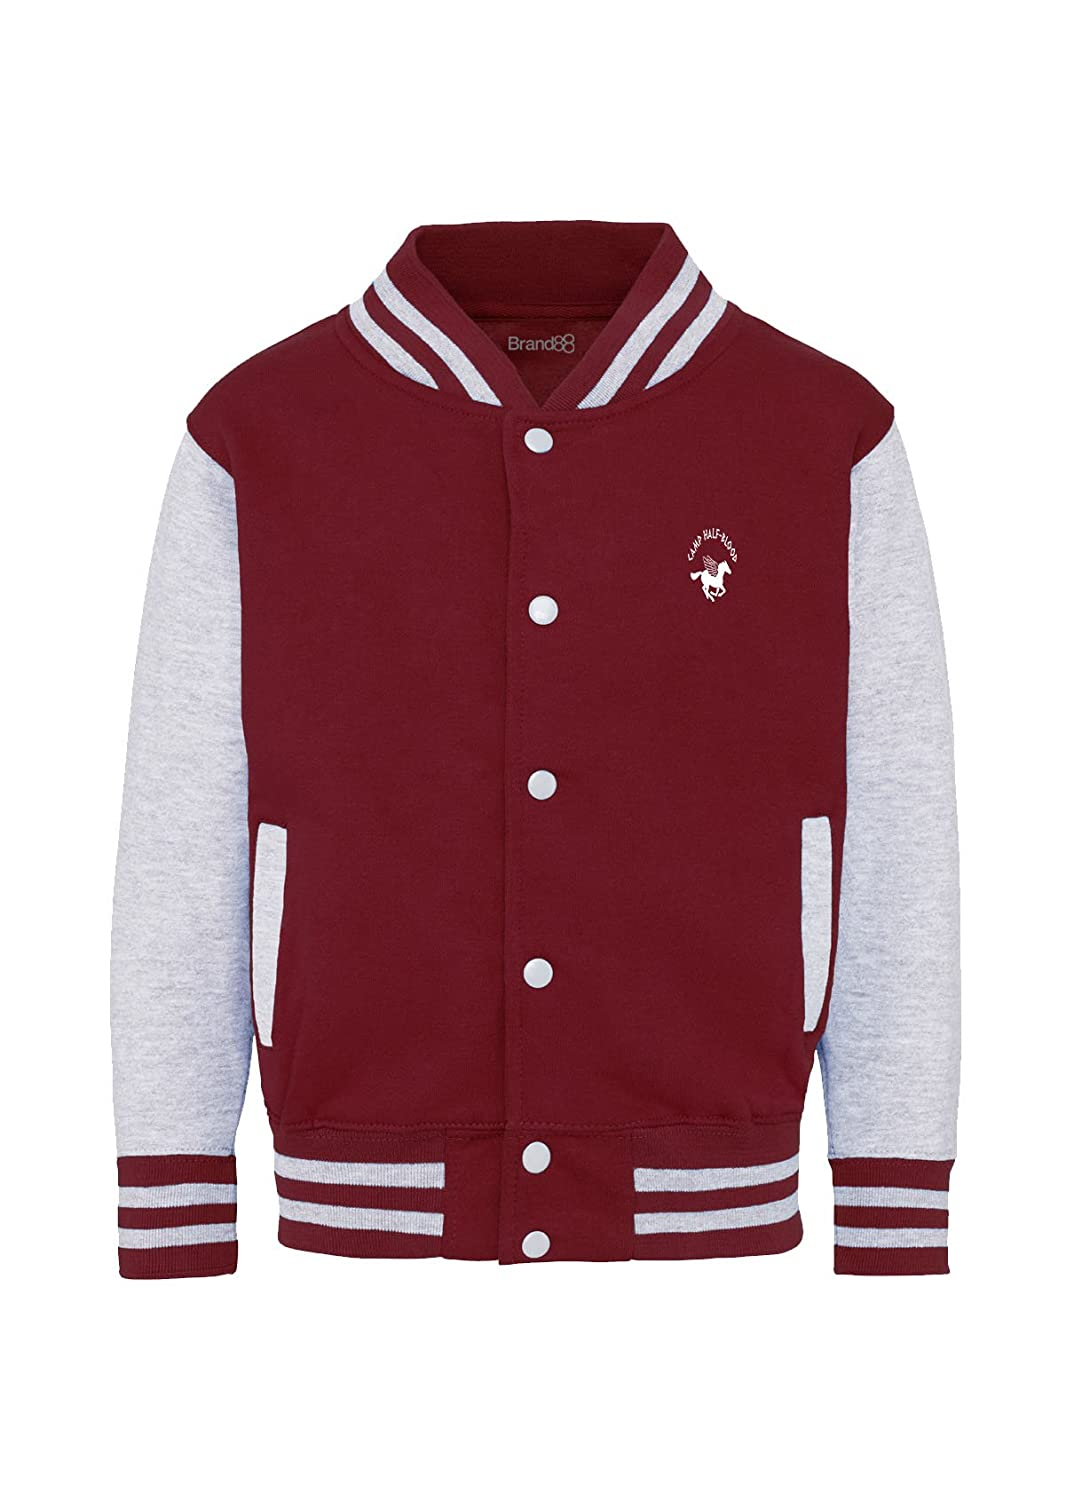 Brand88 Camp Half-Blood, Kids Varsity Jacket JH43J_NY071